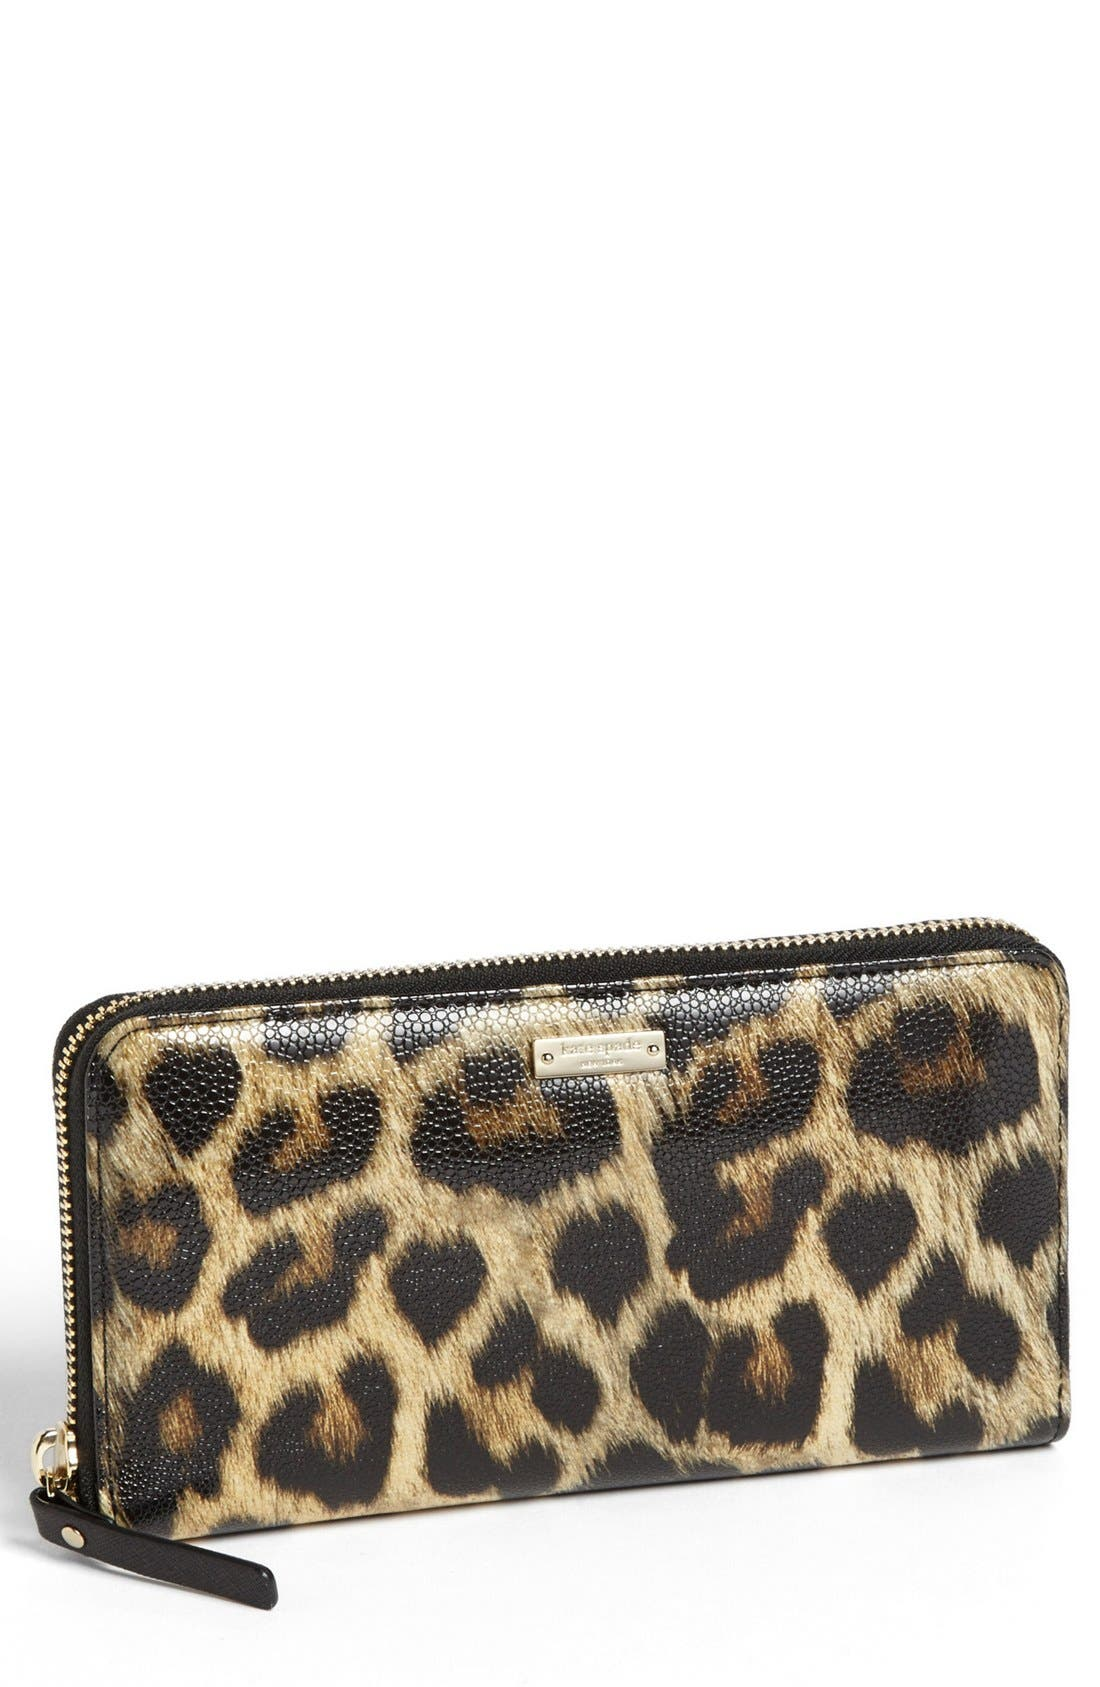 Alternate Image 1 Selected - kate spade new york 'cedar street animal - lacey' wallet